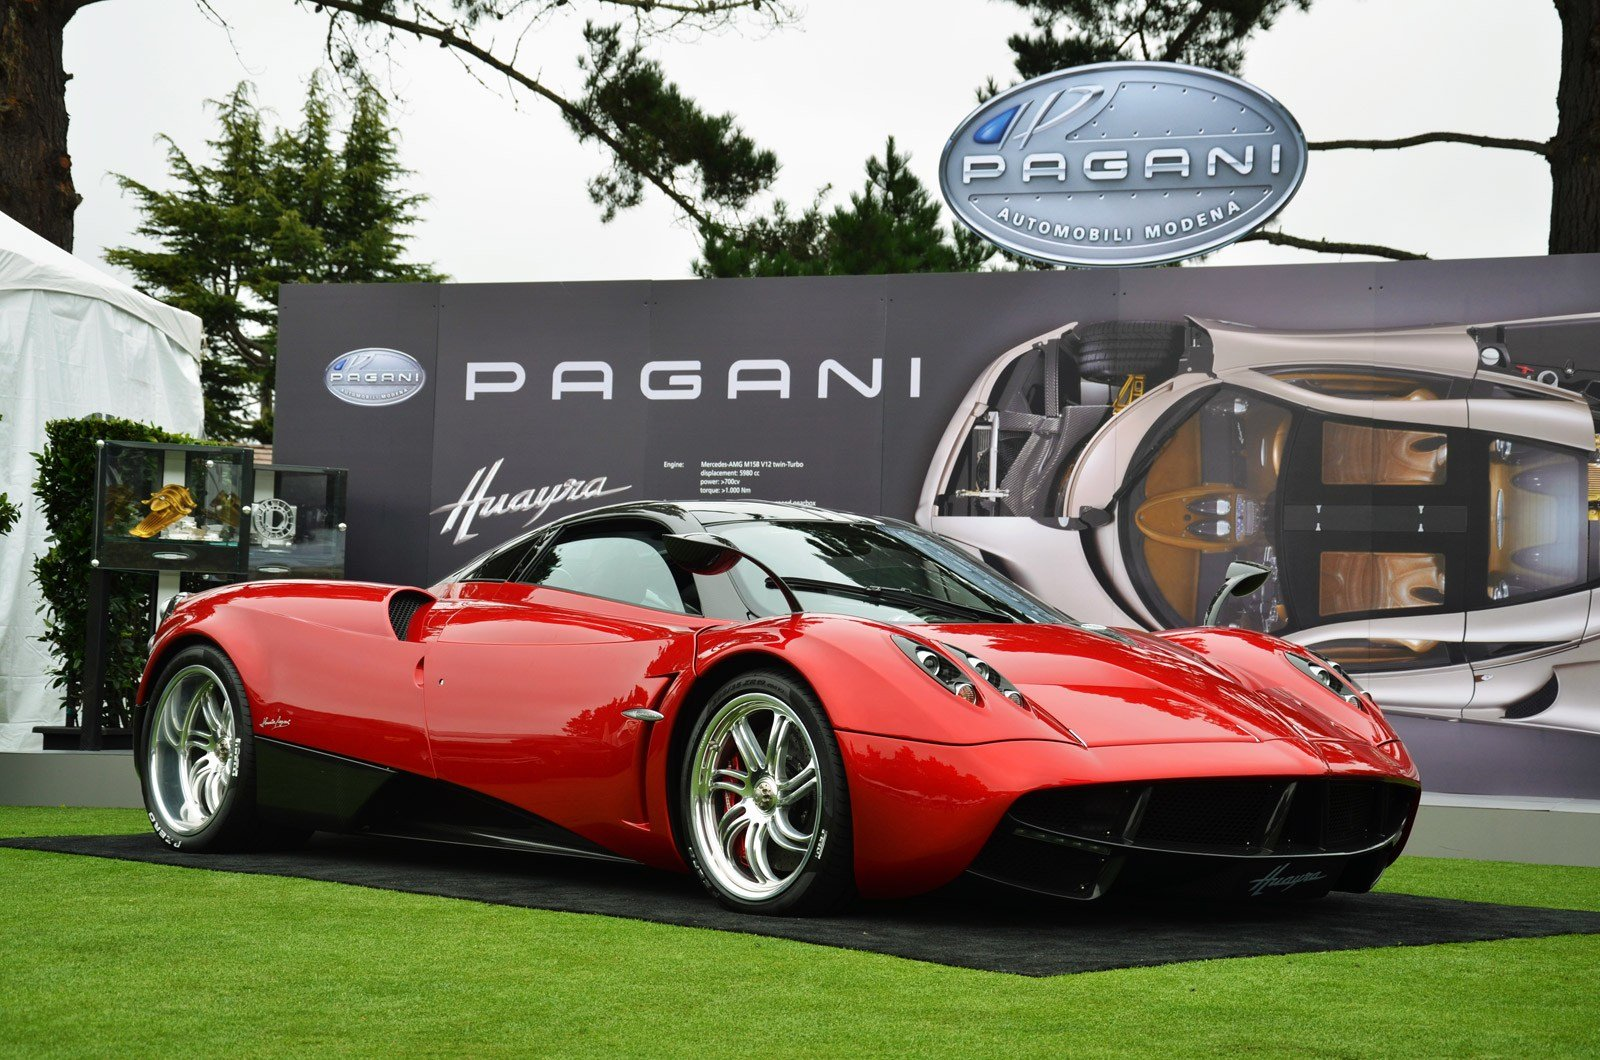 New Pagani Huayra Chassis Number 1 For Sale On This Month